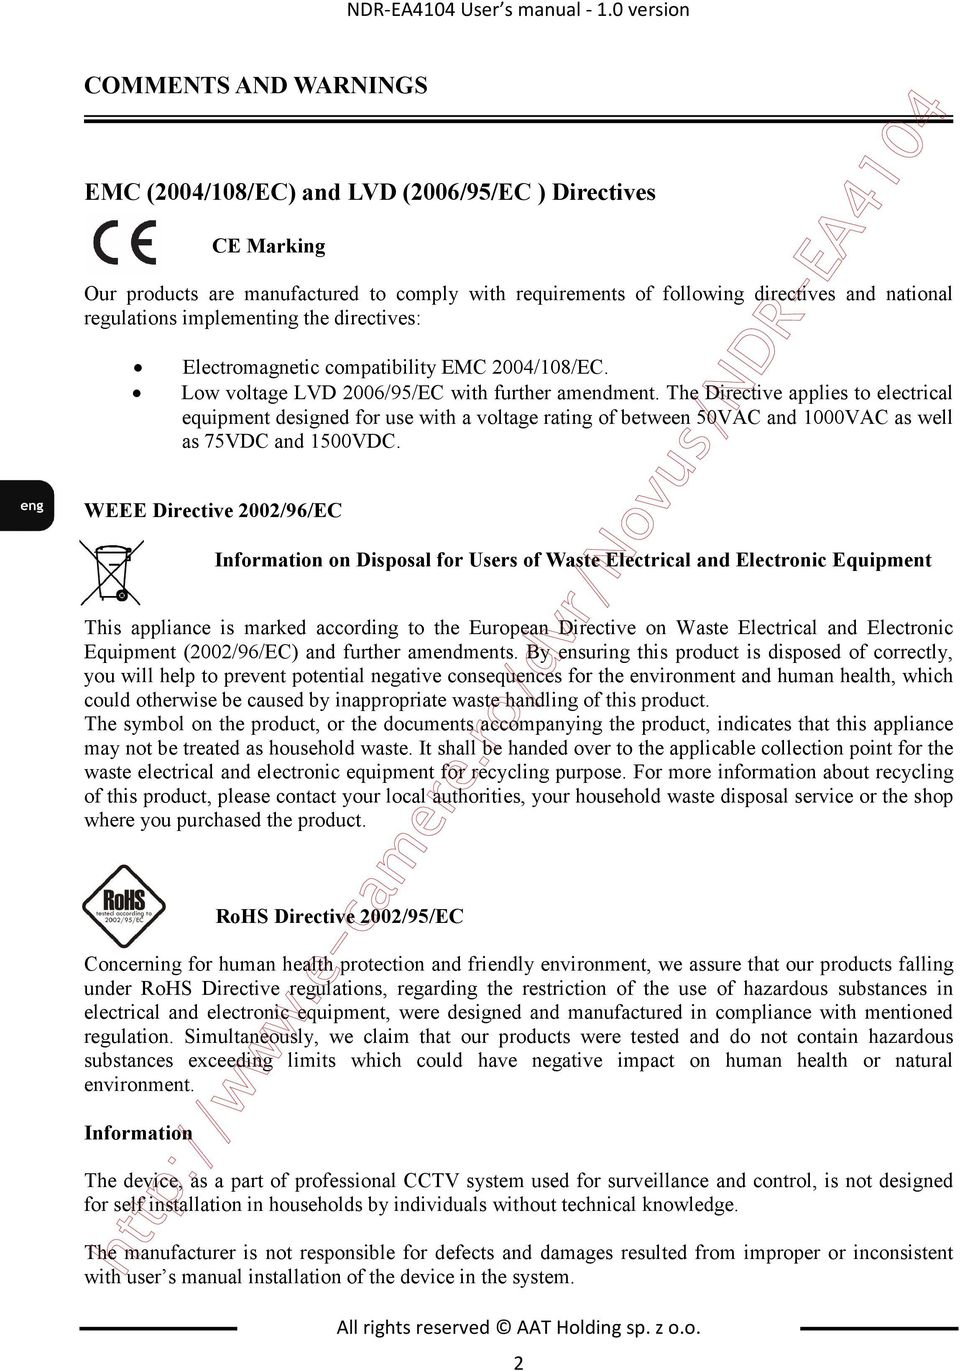 regulations implementing the directives: Electromagnetic compatibility EMC 2004/108/EC. Low voltage LVD 2006/95/EC with further amendment.